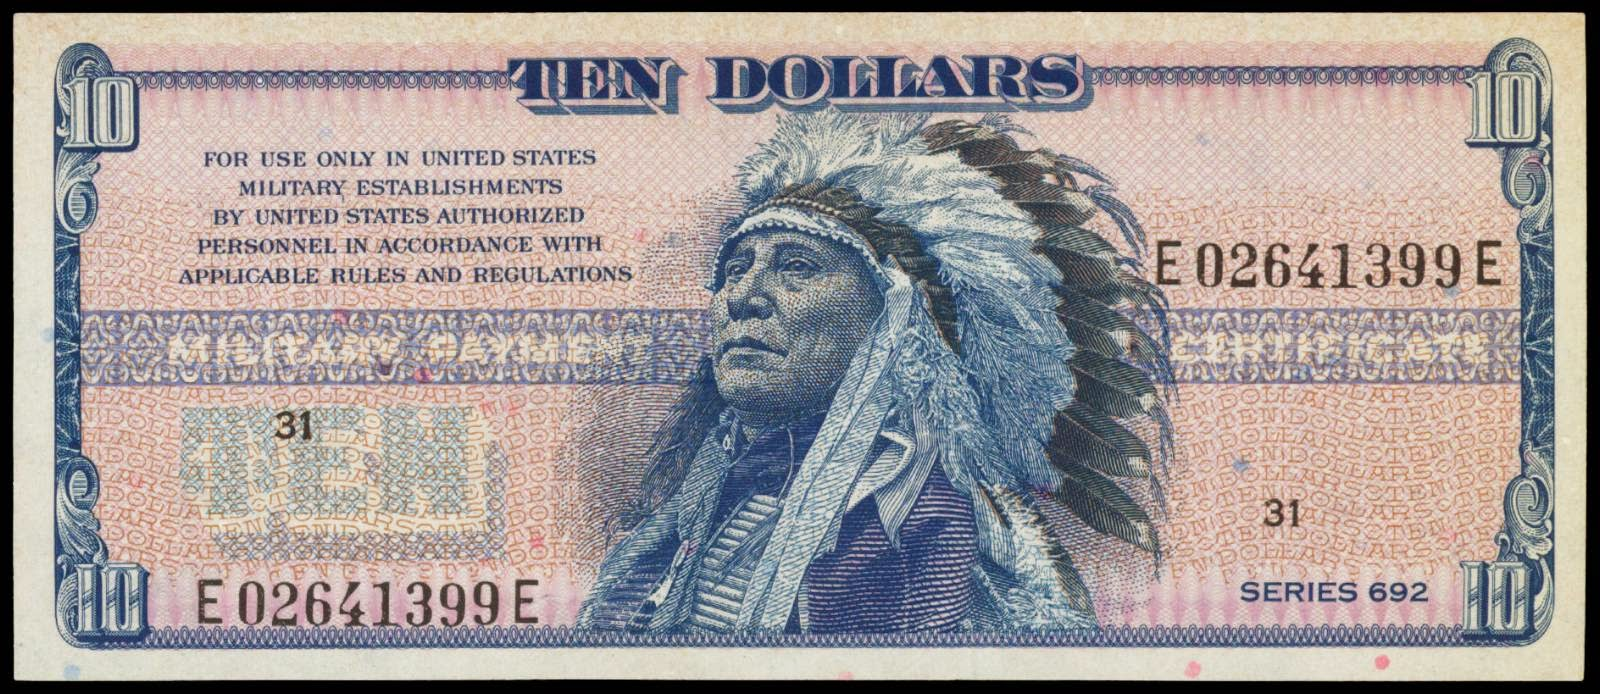 10 Dollars MPC Military Payment Certificate Series 692 Indian Chief Hollow Horn Bear